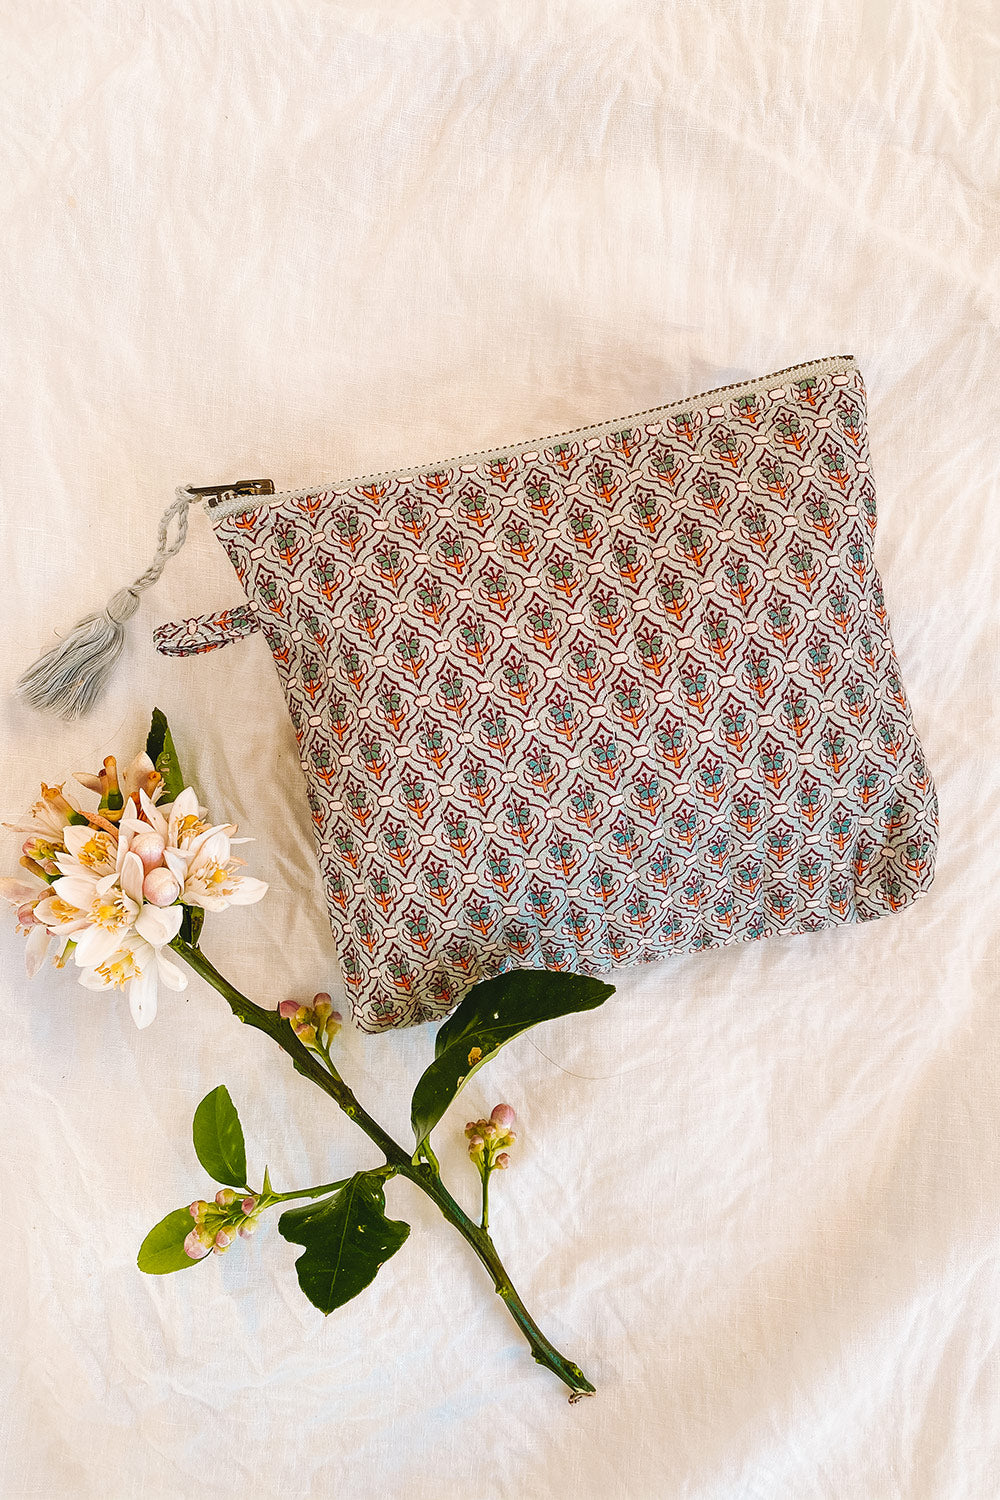 Fleetwood Revive Pouch in Tile Grey